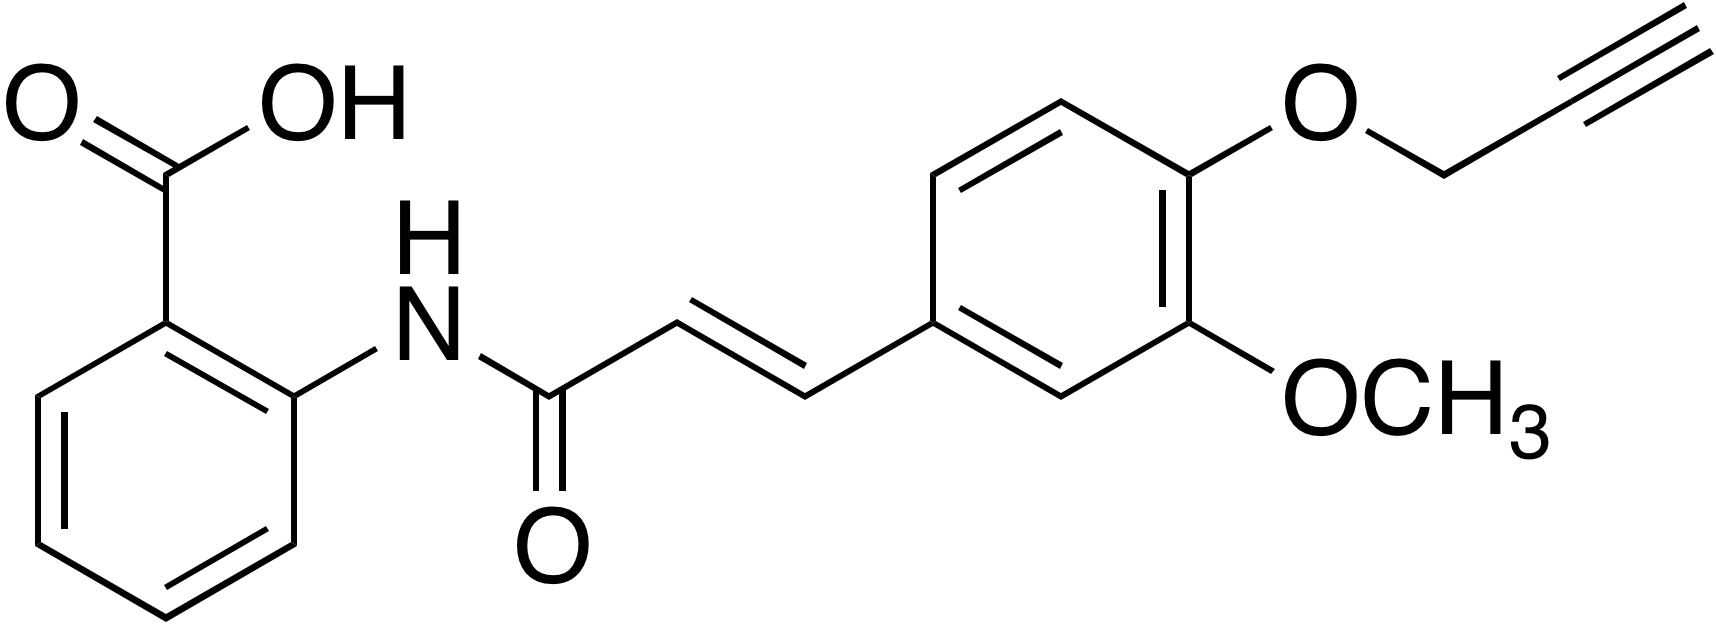 3- Methoxy-4-propargyloxycinnamoyl anthranilate